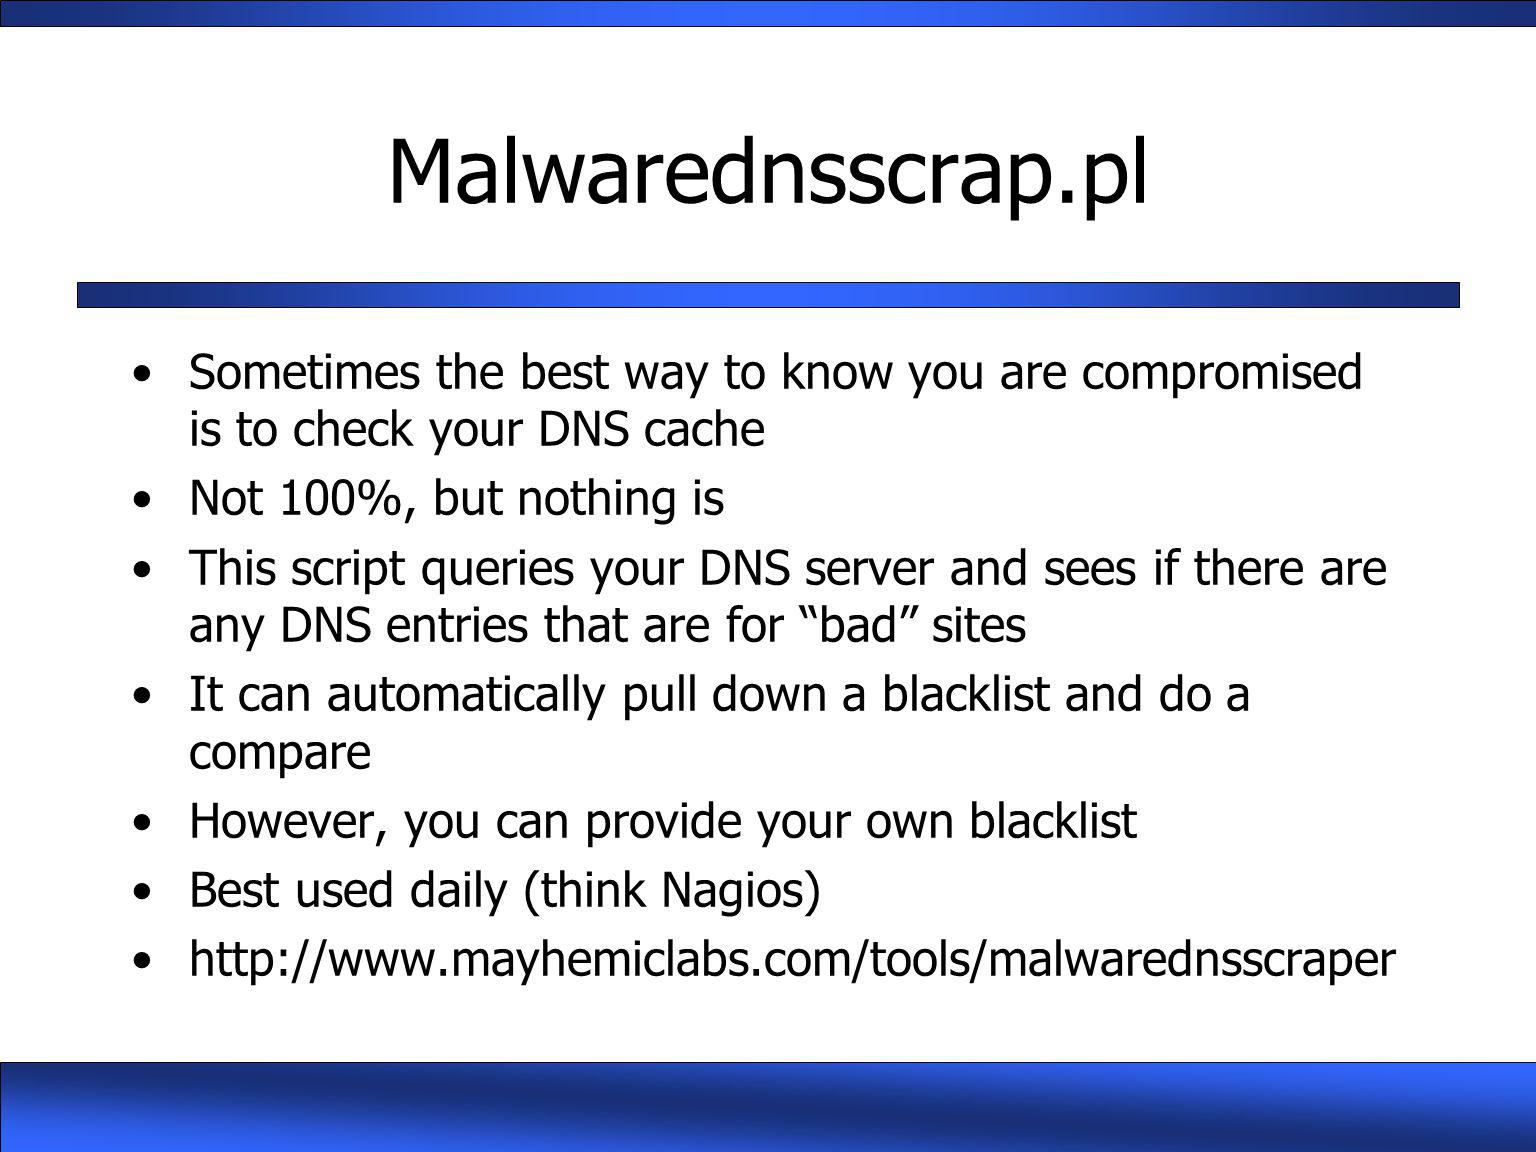 Malwarednsscrap.pl Sometimes the best way to know you are compromised is to check your DNS cache. Not 100%, but nothing is.